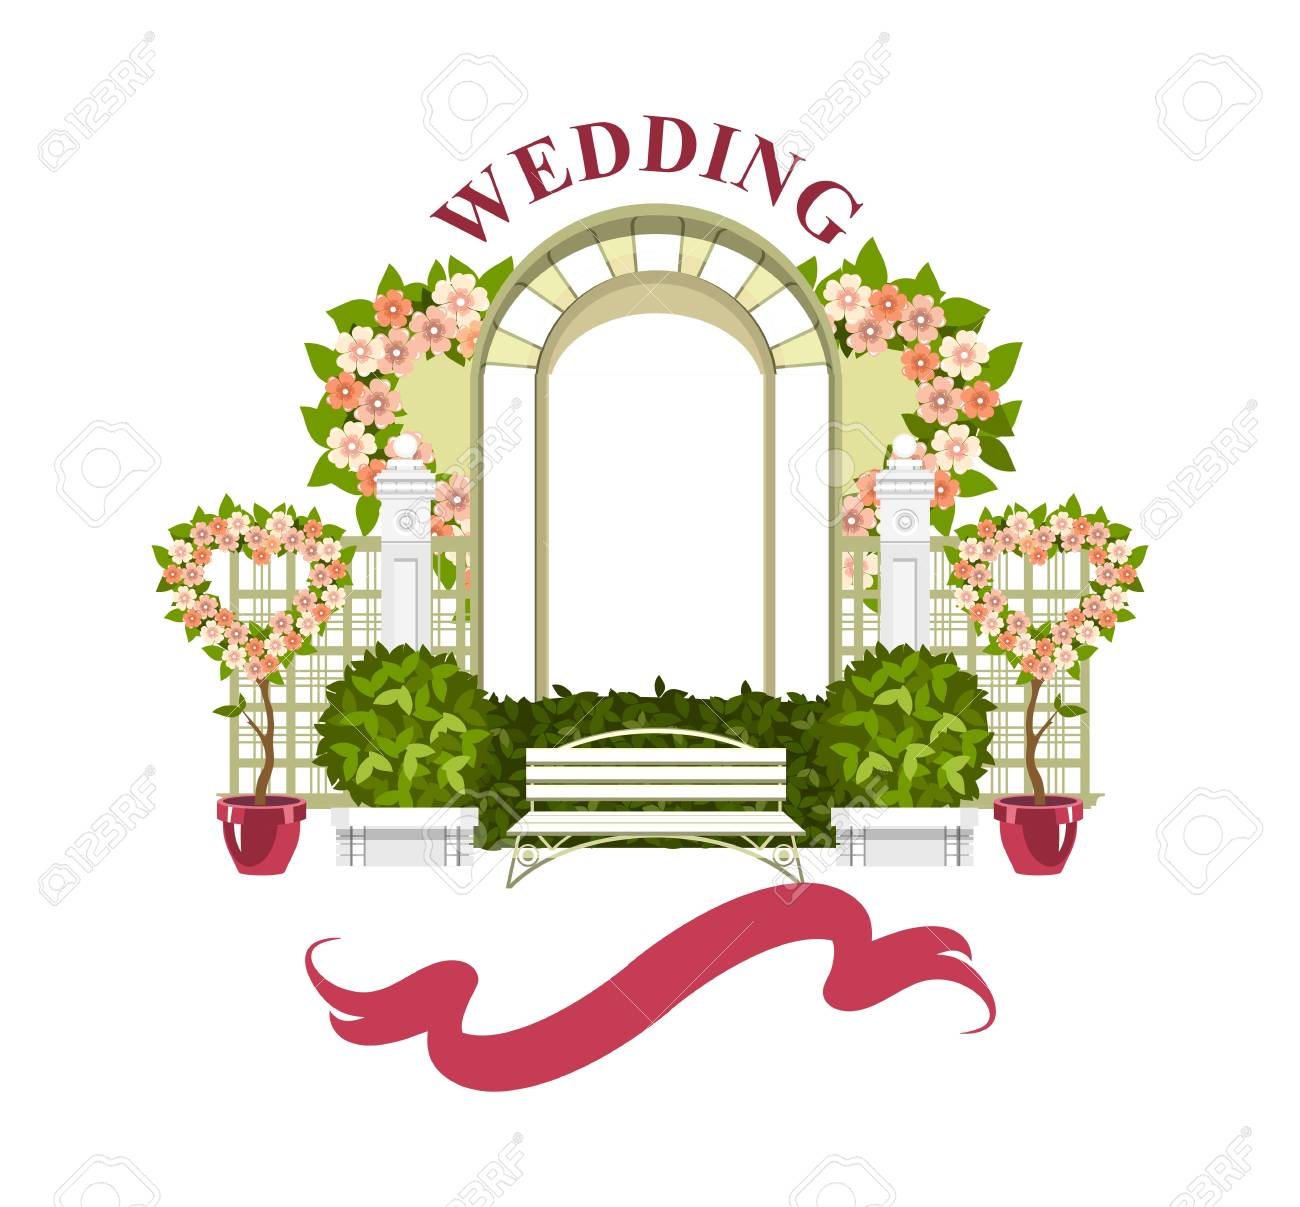 Wedding Arch On A White Background Of Plant Elements And Flowers Royalty Free Cliparts Vectors And Stock Illustration Image 102287235